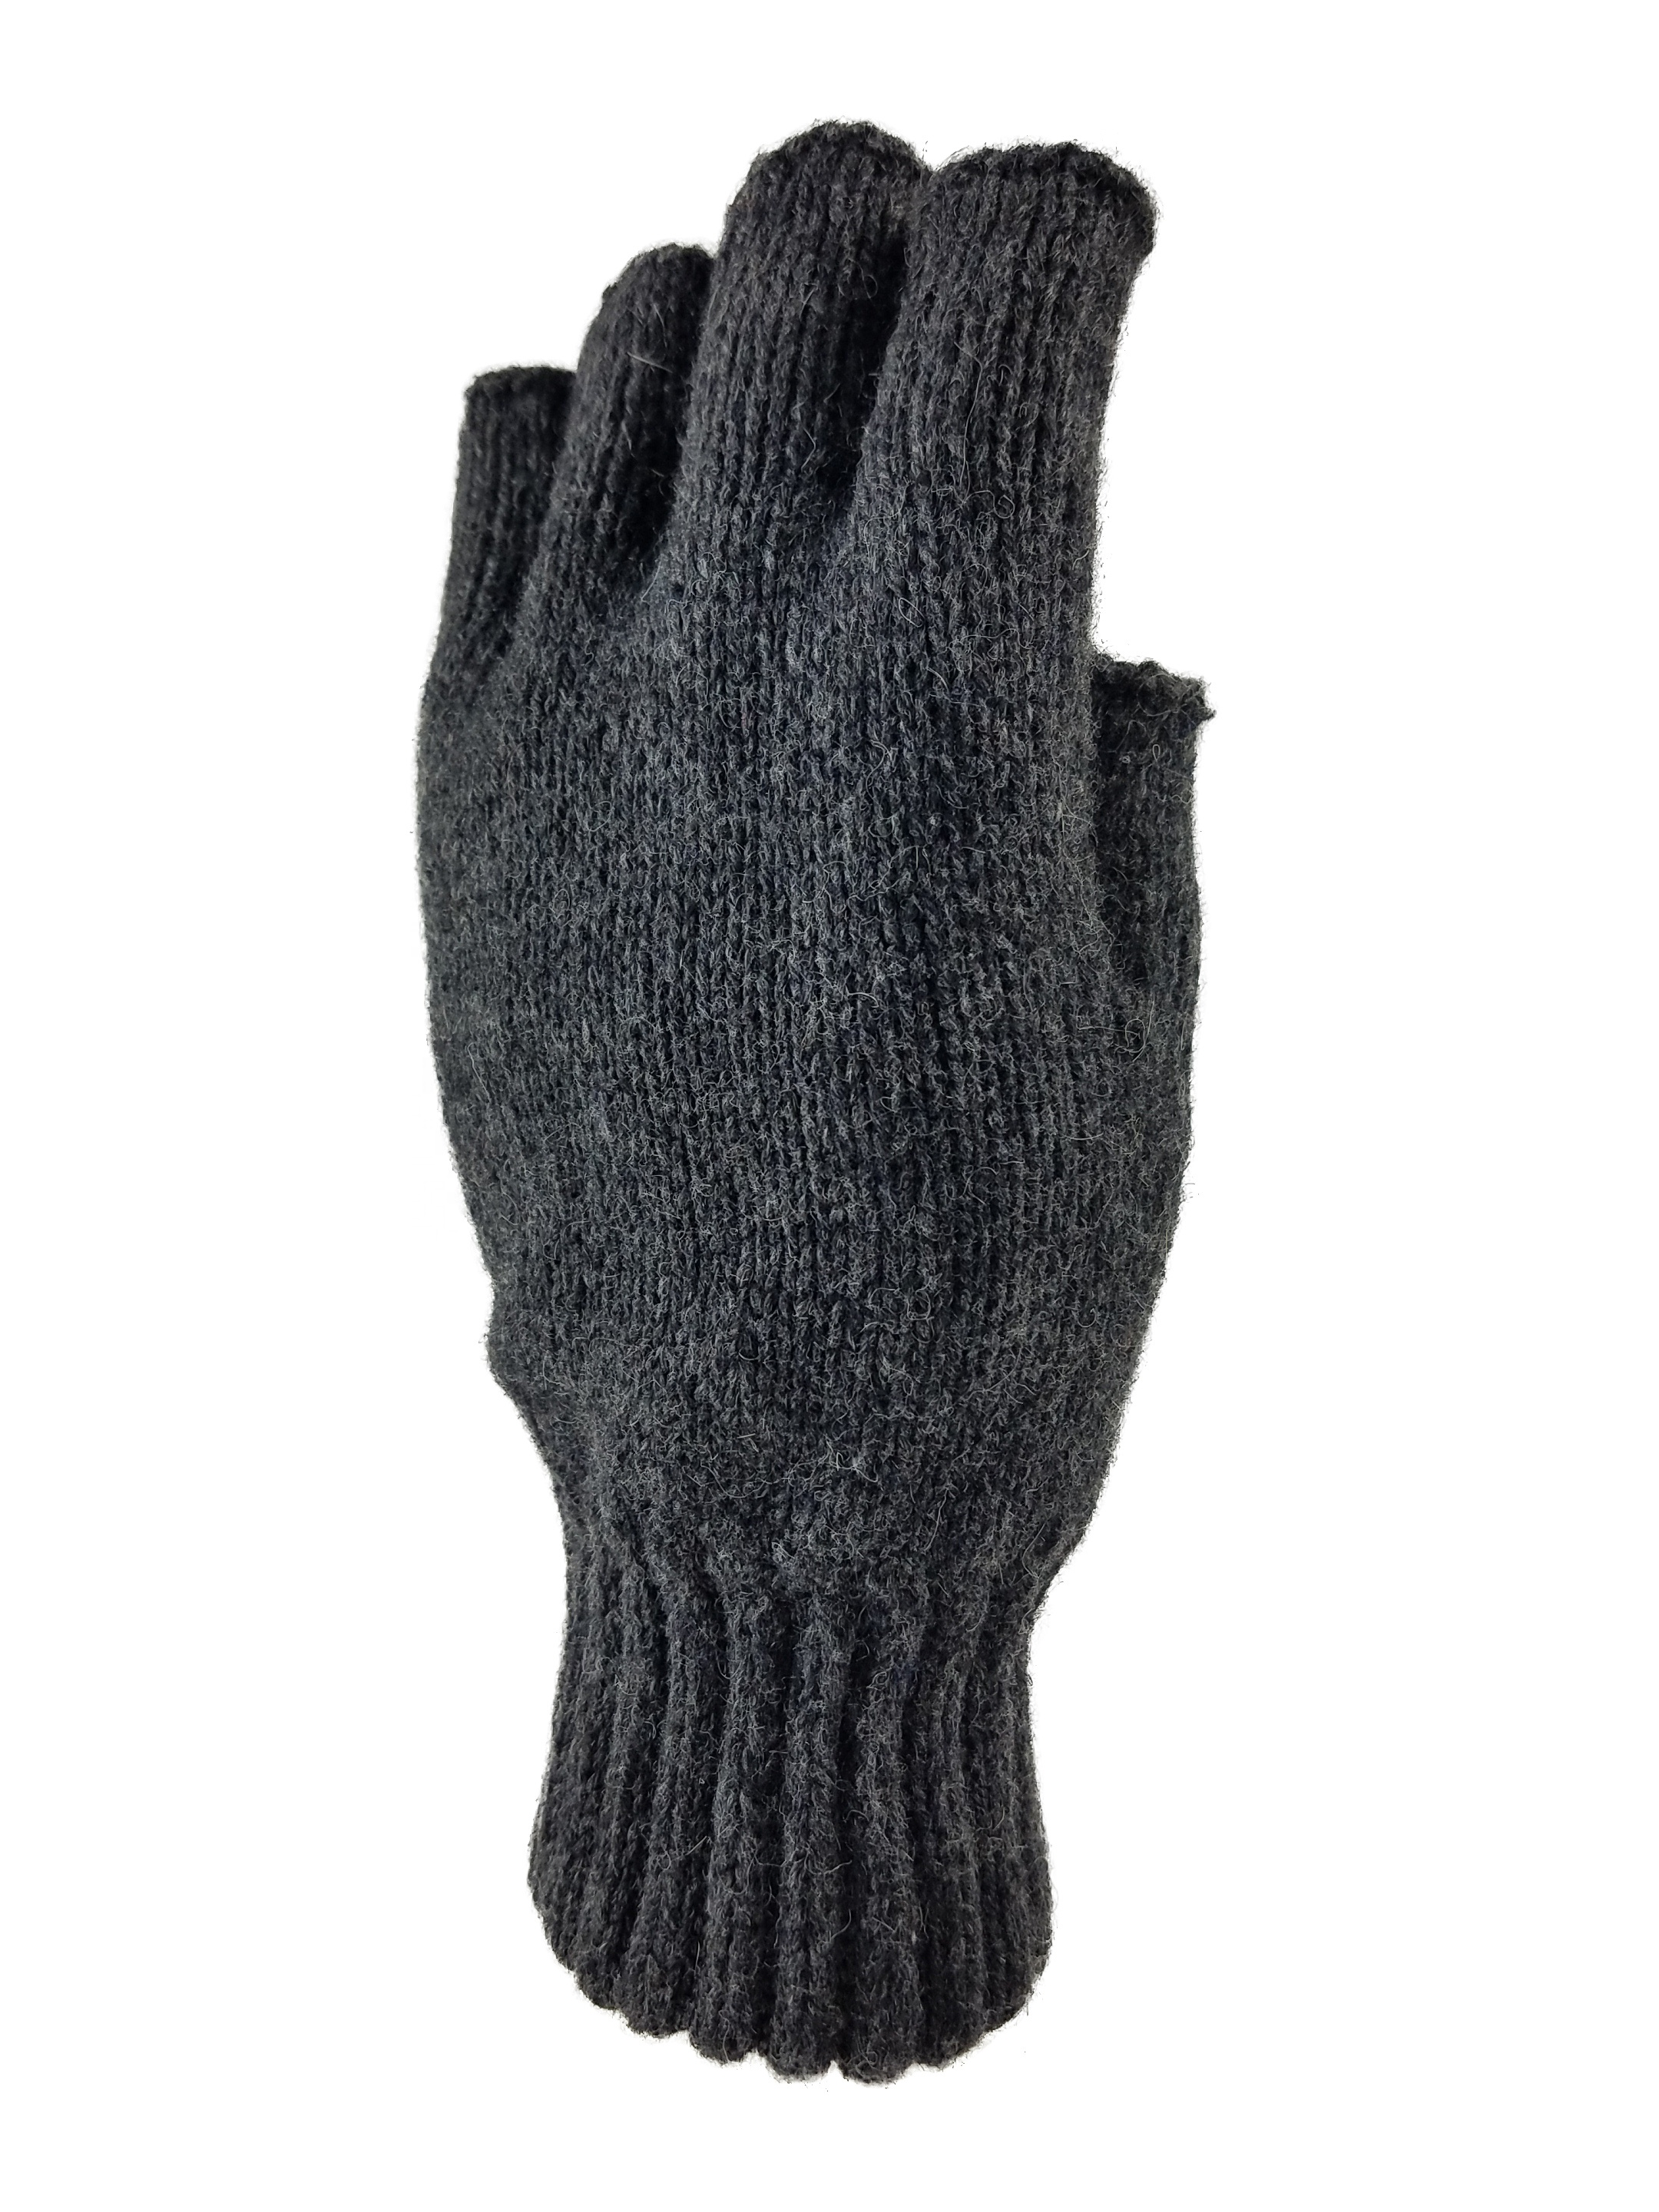 Men's knitted Fingerless Ragg Gloves with Thinsulate Lining